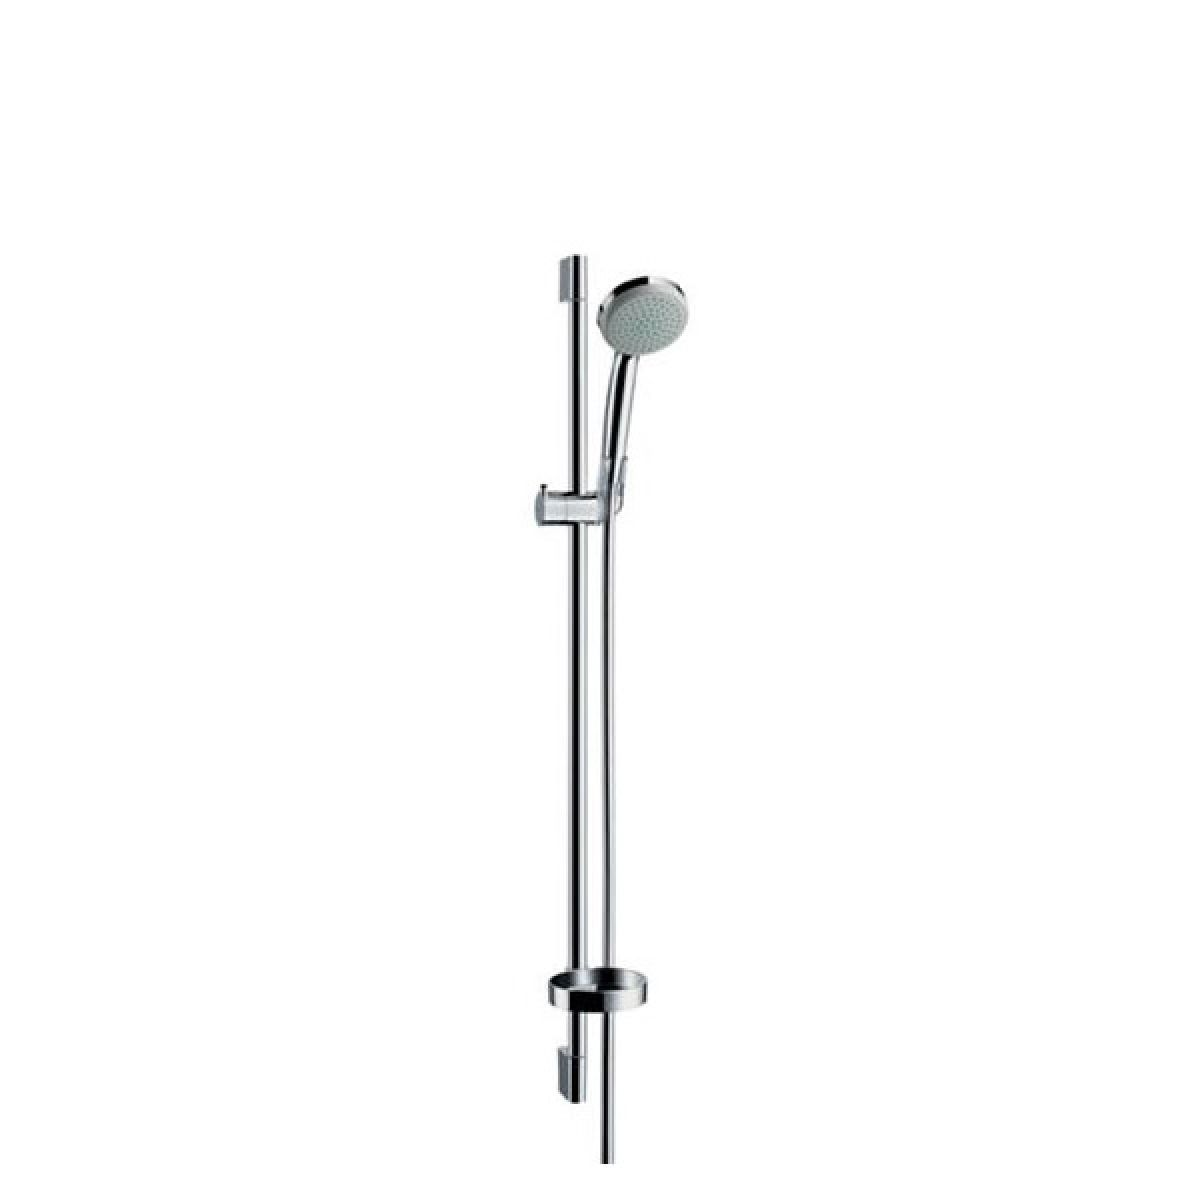 hansgrohe croma 100 1 jet unica c shower set bathrooms. Black Bedroom Furniture Sets. Home Design Ideas